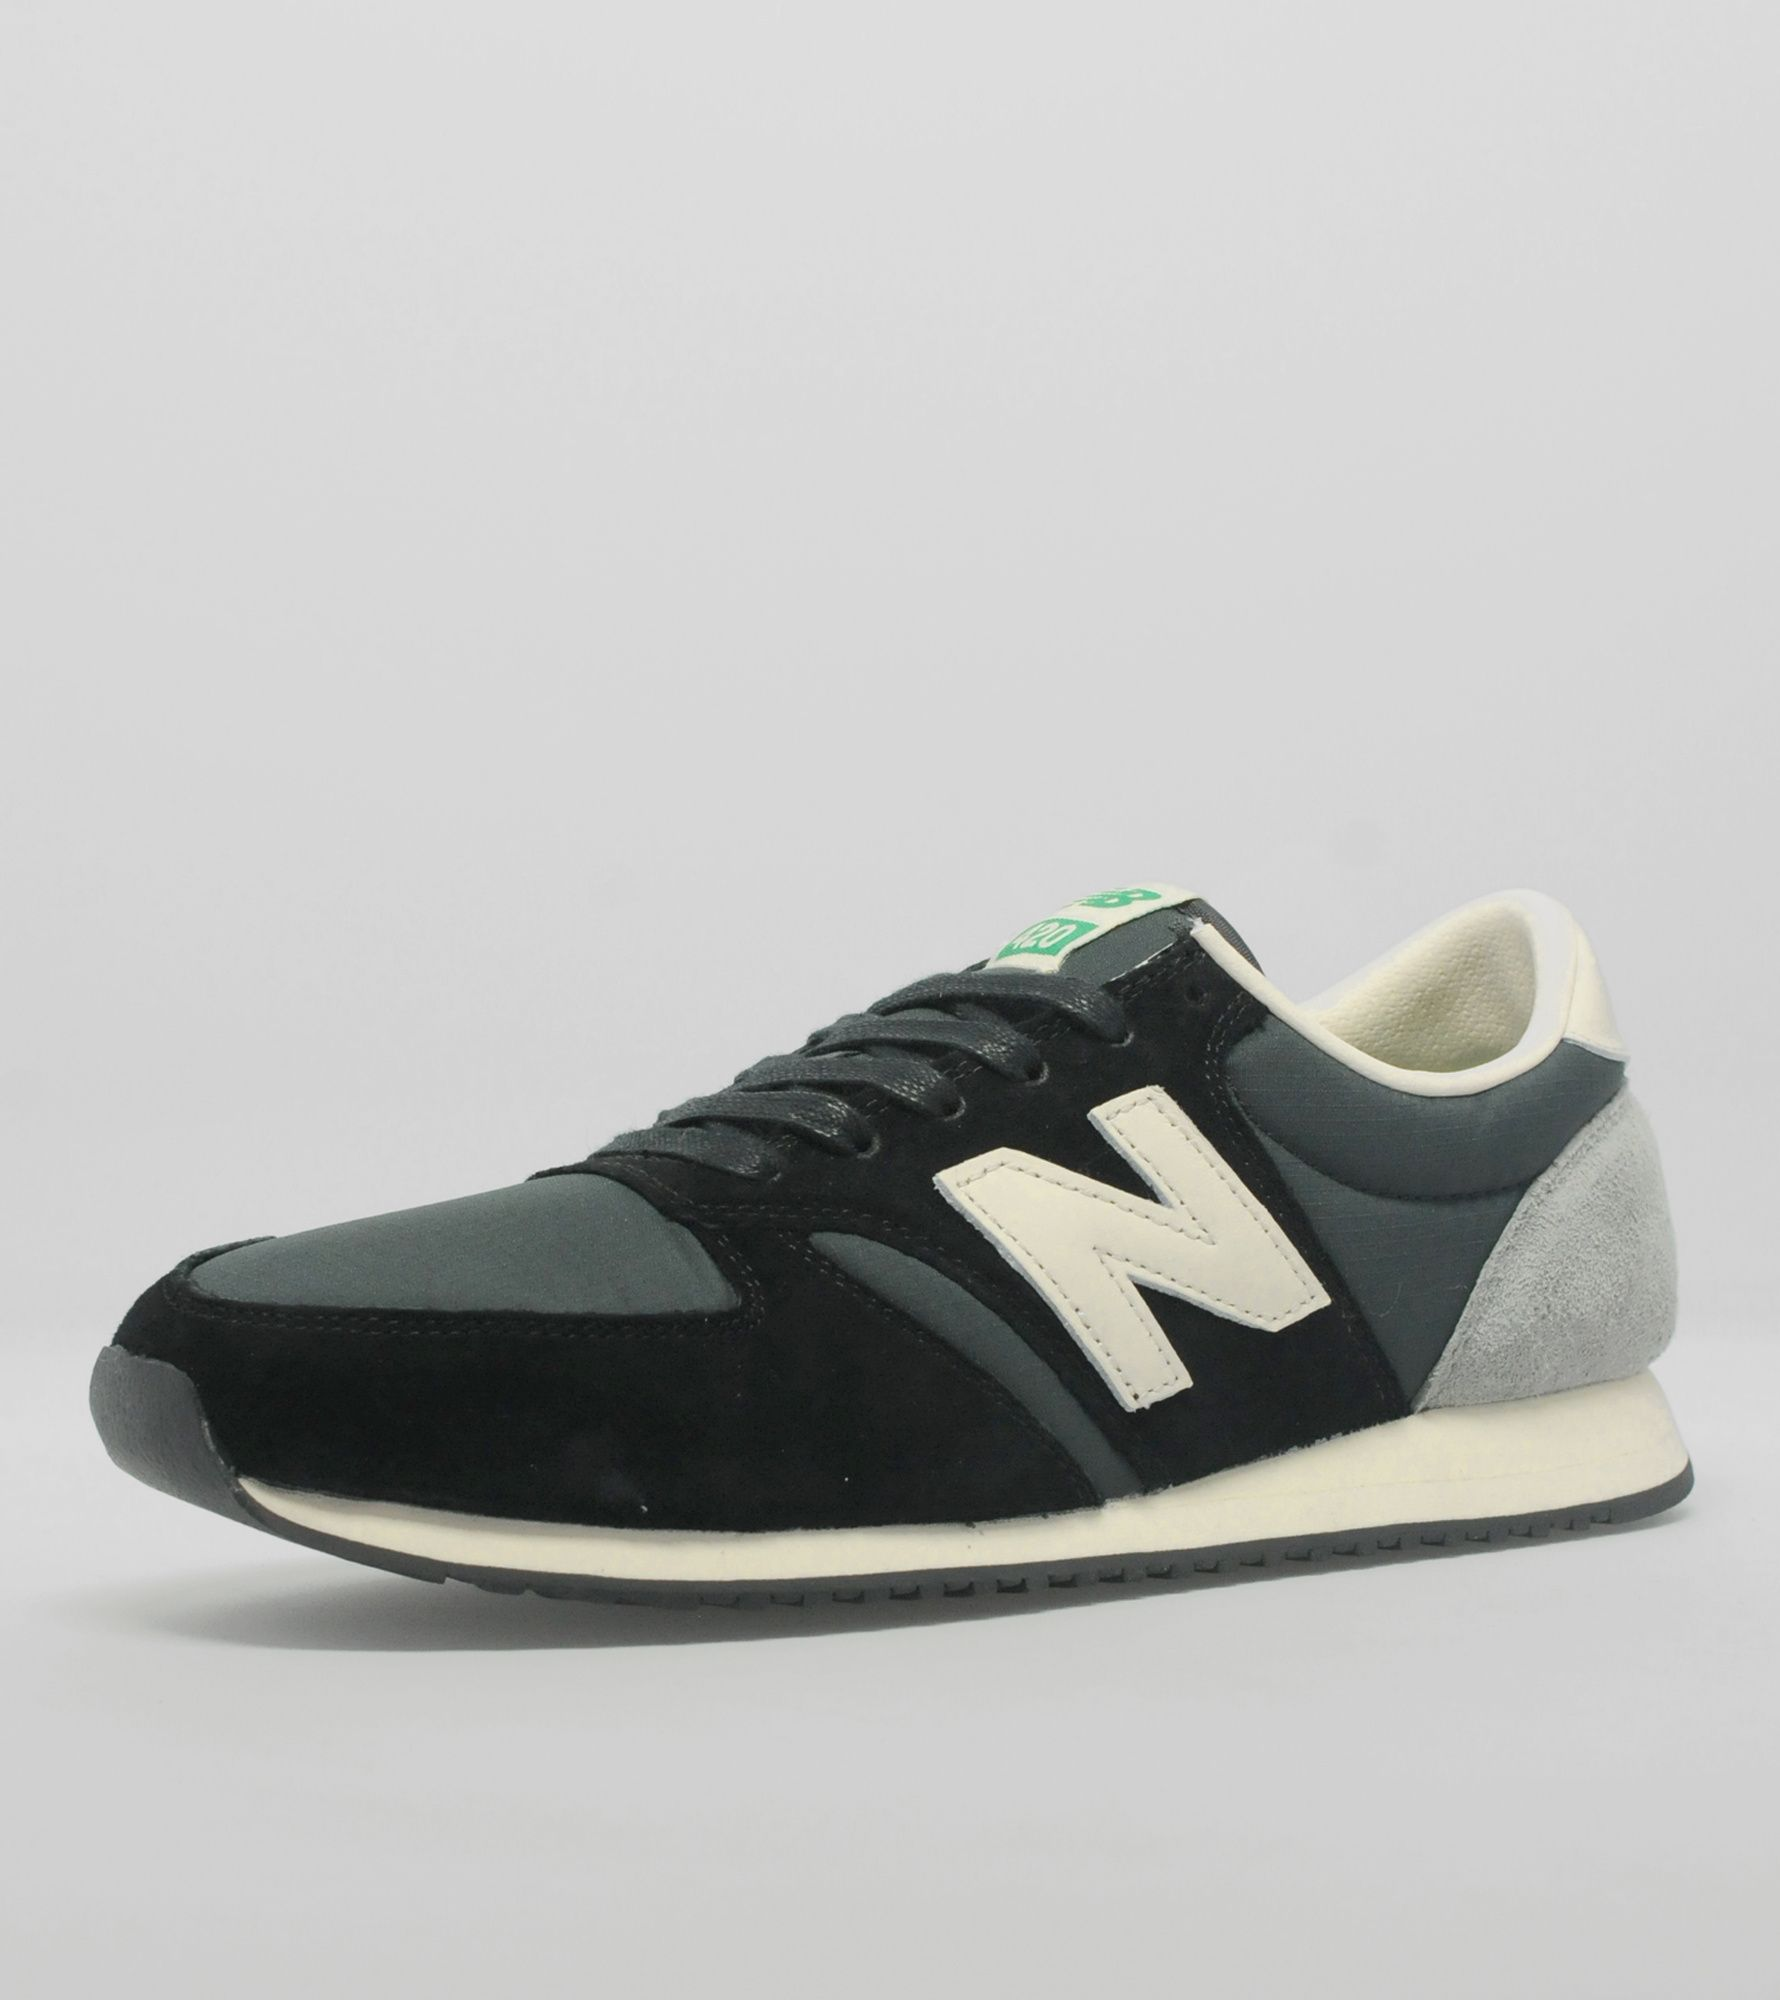 new balance 420 grey suede & nylon trainers